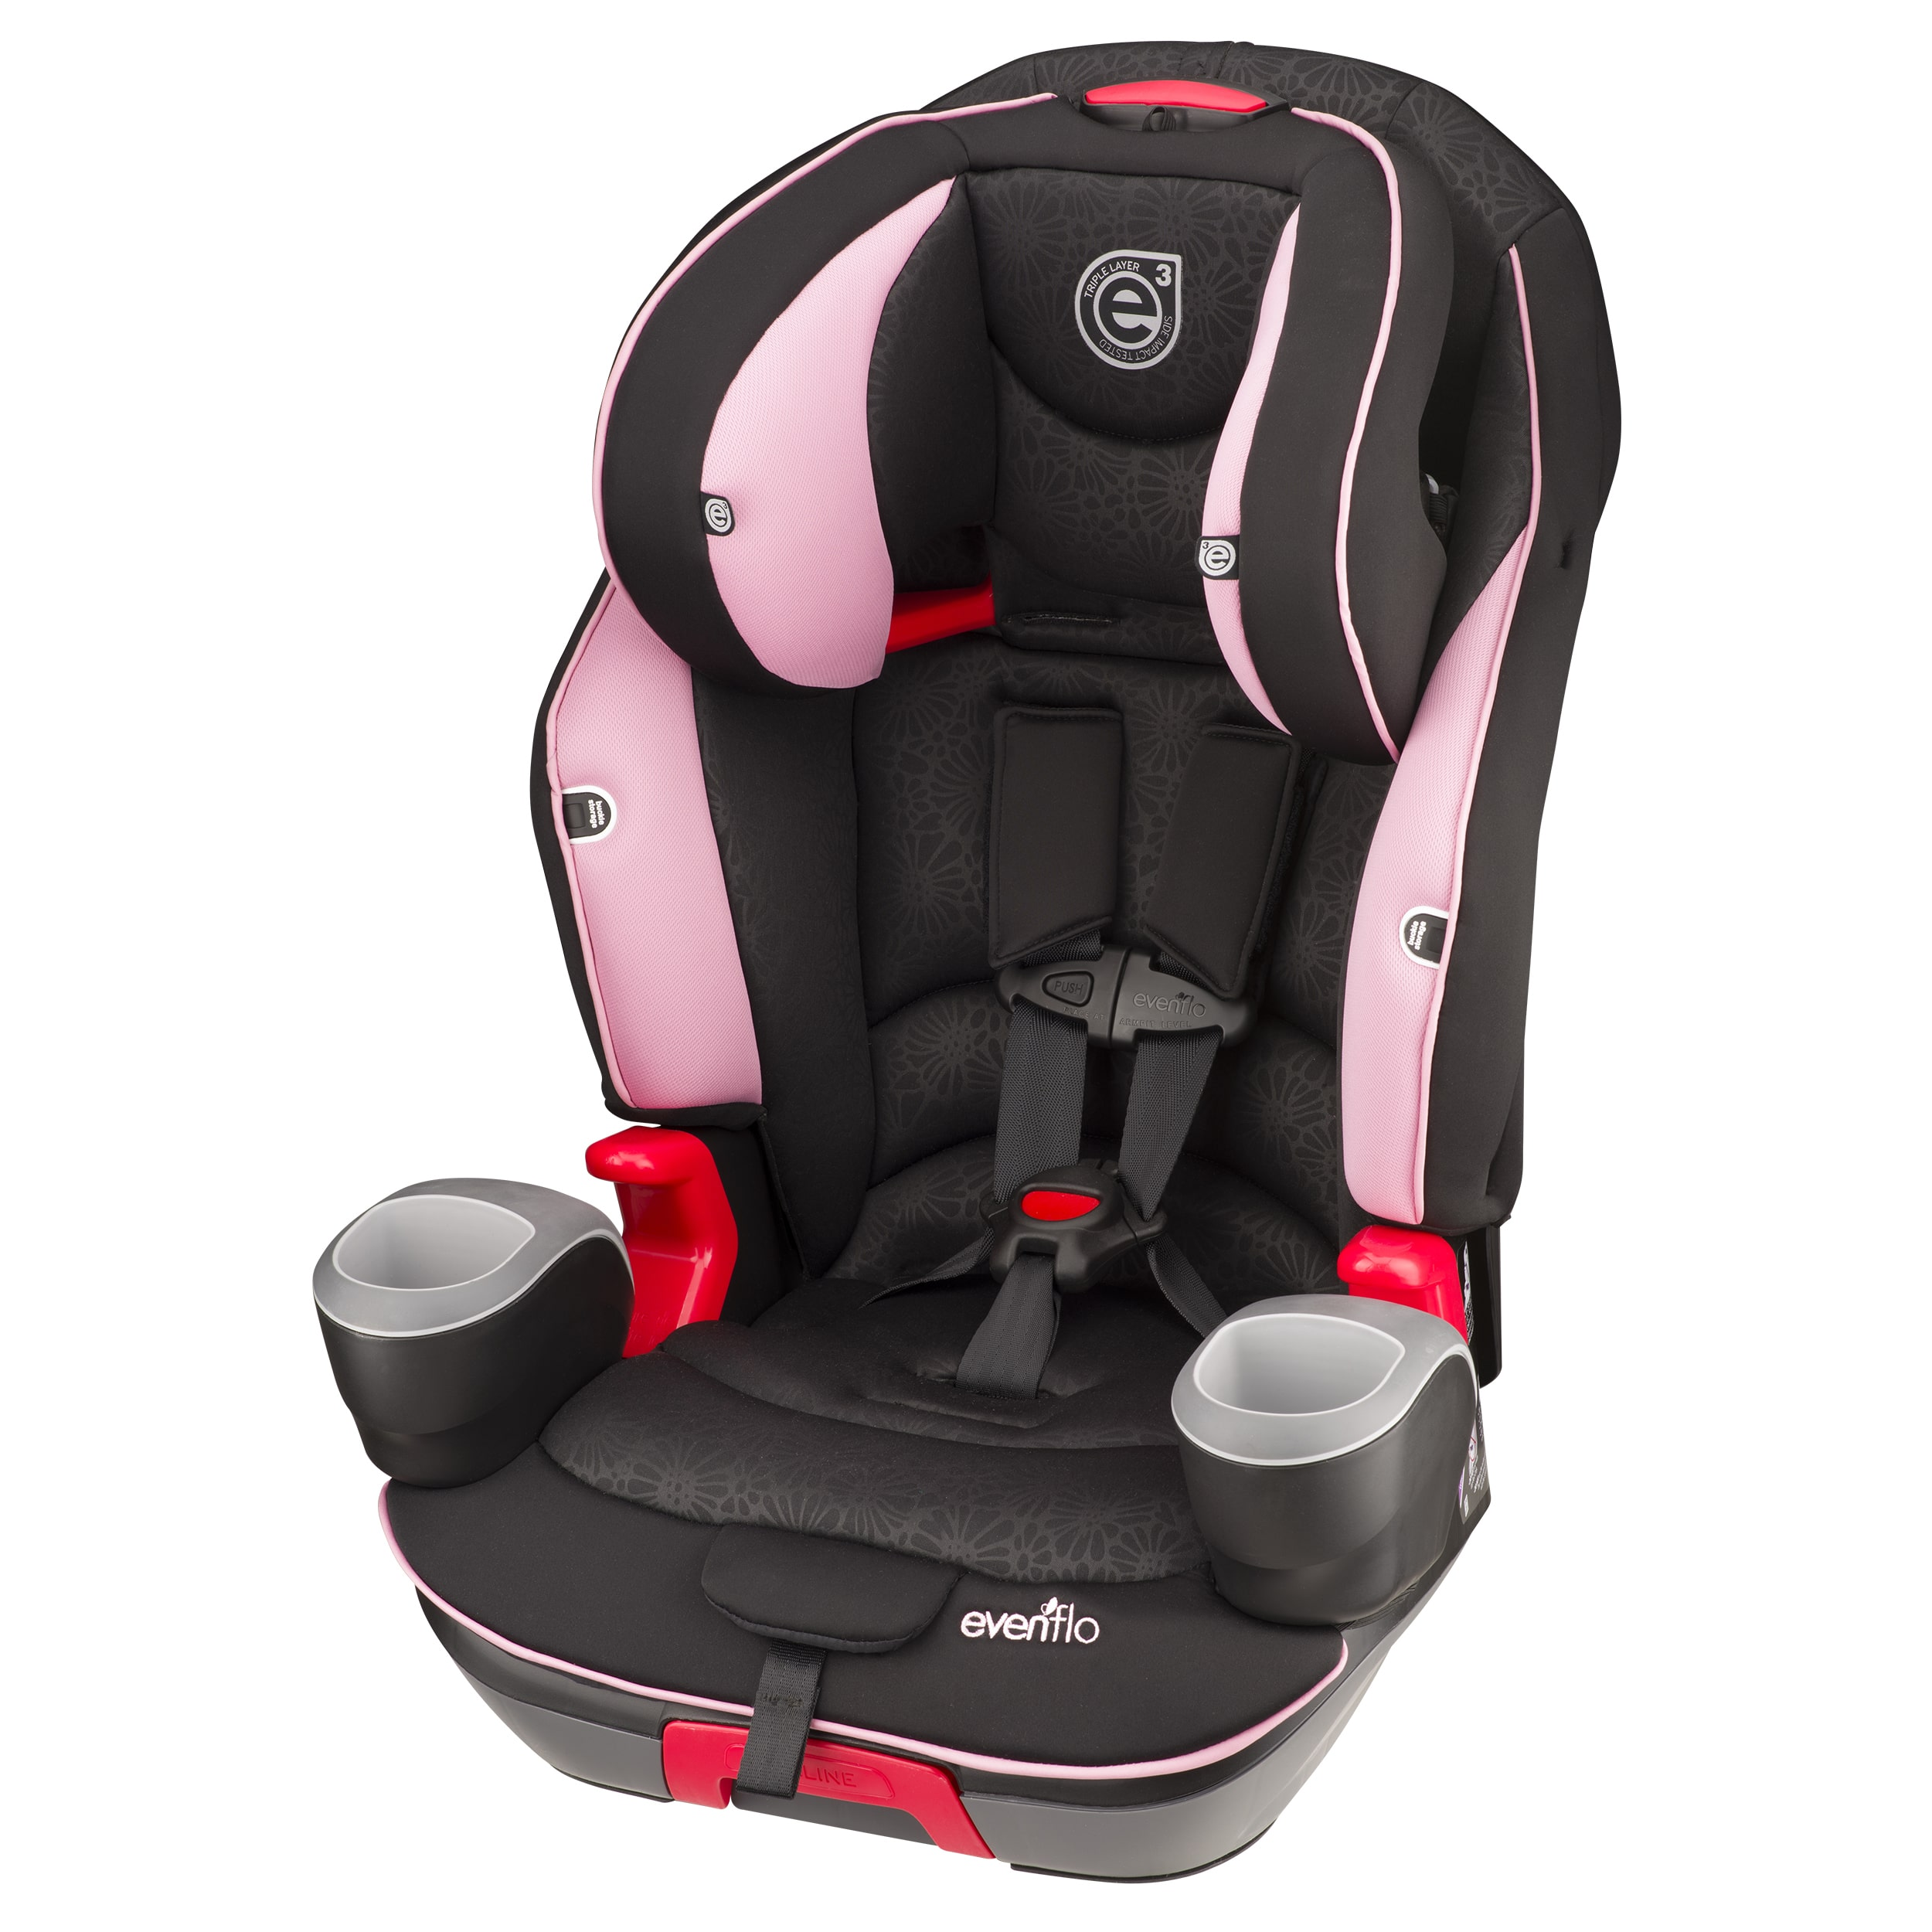 Evenflo  Evolve Booster Car Seat in Pink Daisies